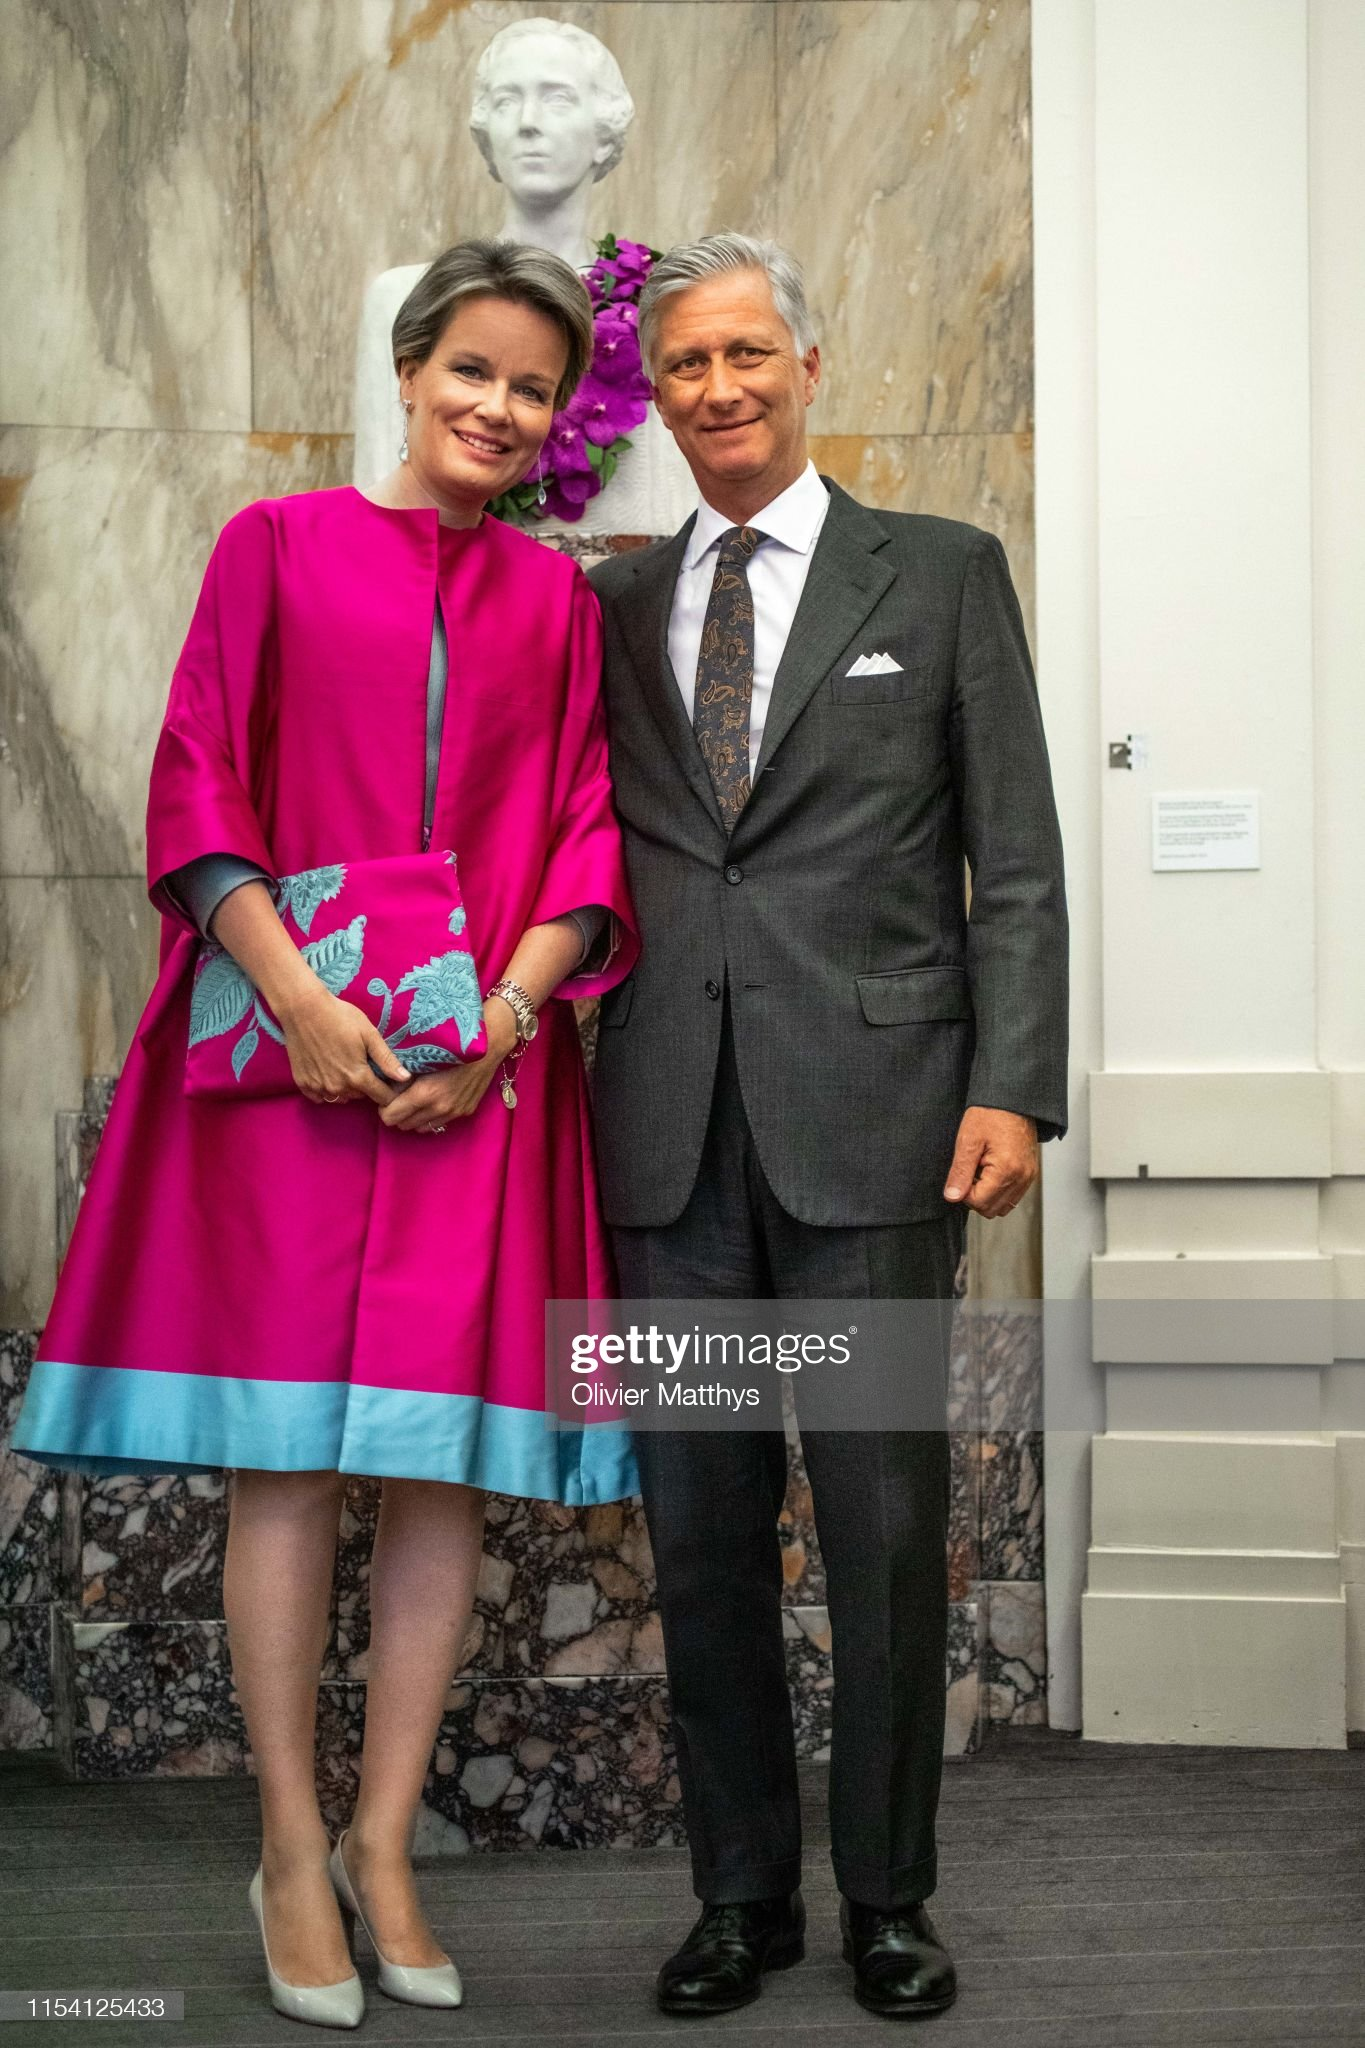 King Philippe Of Belgium And Queen Mathilde Of Belgium Attends The Closing Of The International Music Concurs At Bozar : News Photo